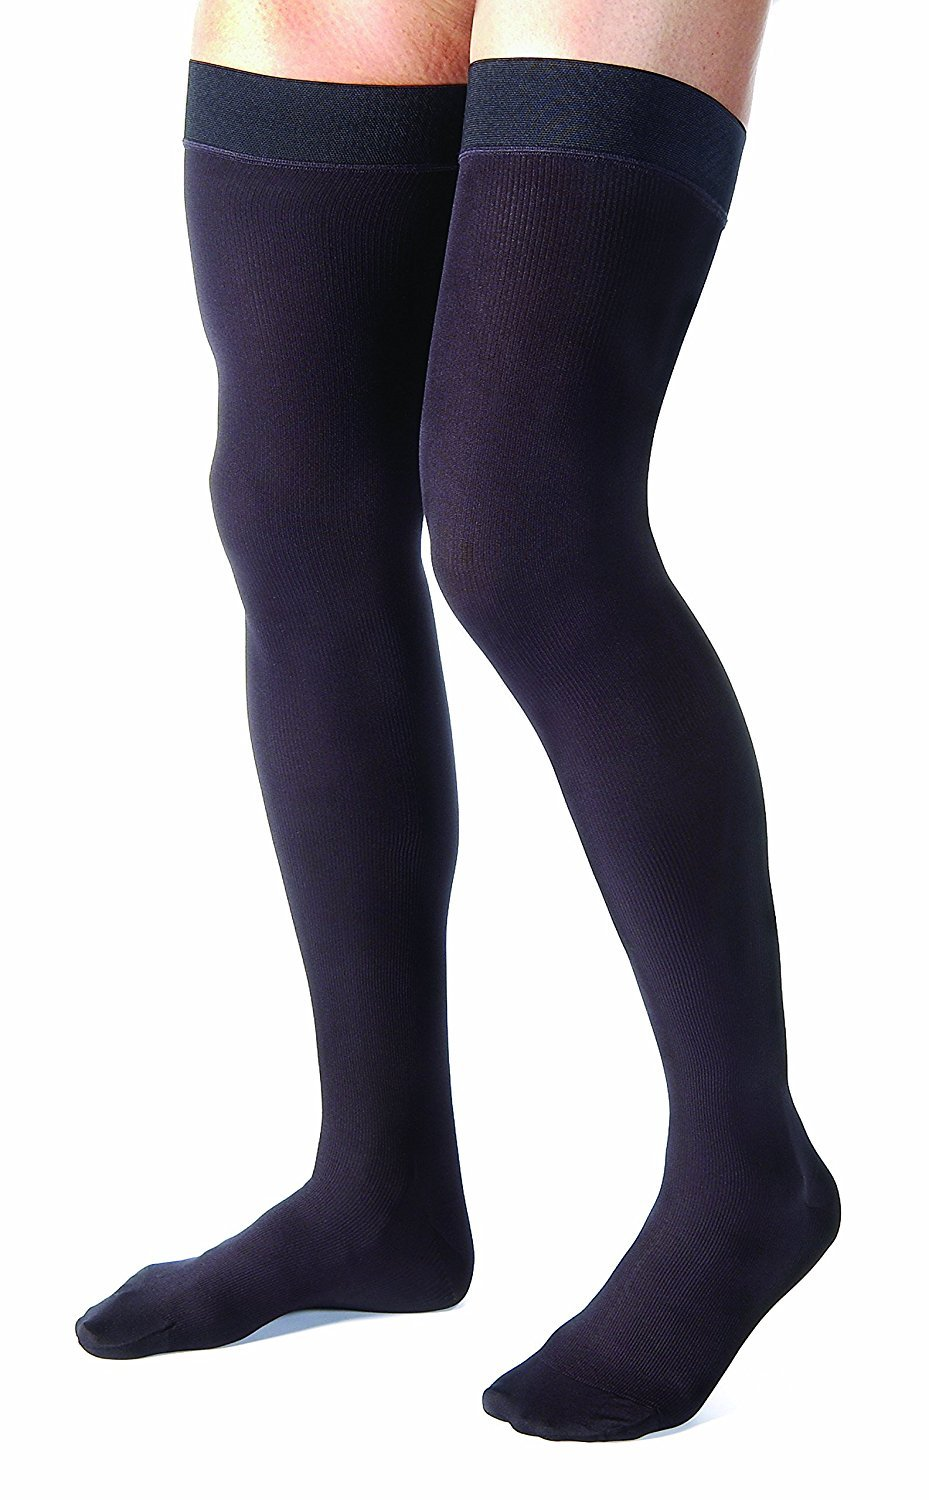 Men's 15-20 mmHg Moderate Support Closed Toe Thigh High Support Sock Size: Small, Color Black